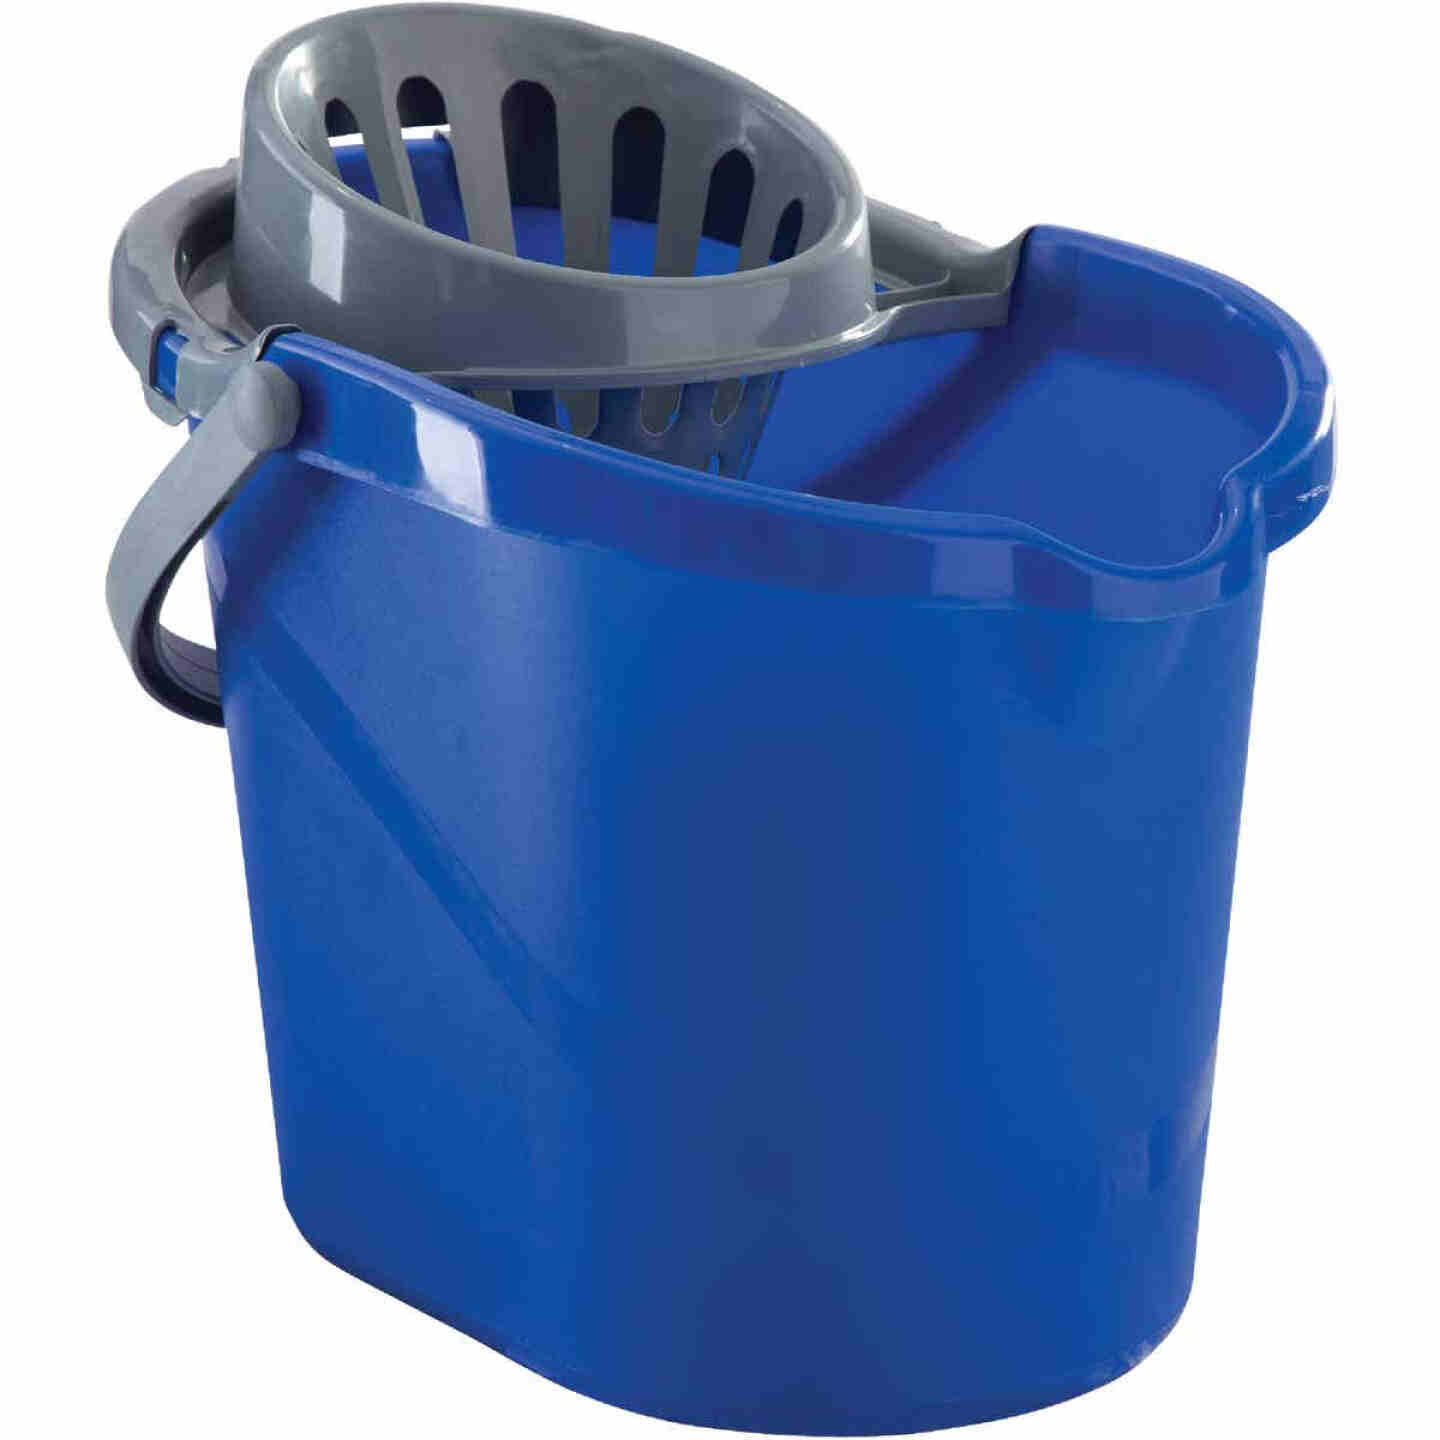 Quickie 15 Qt. Blue Mop Bucket With Wringer Image 1